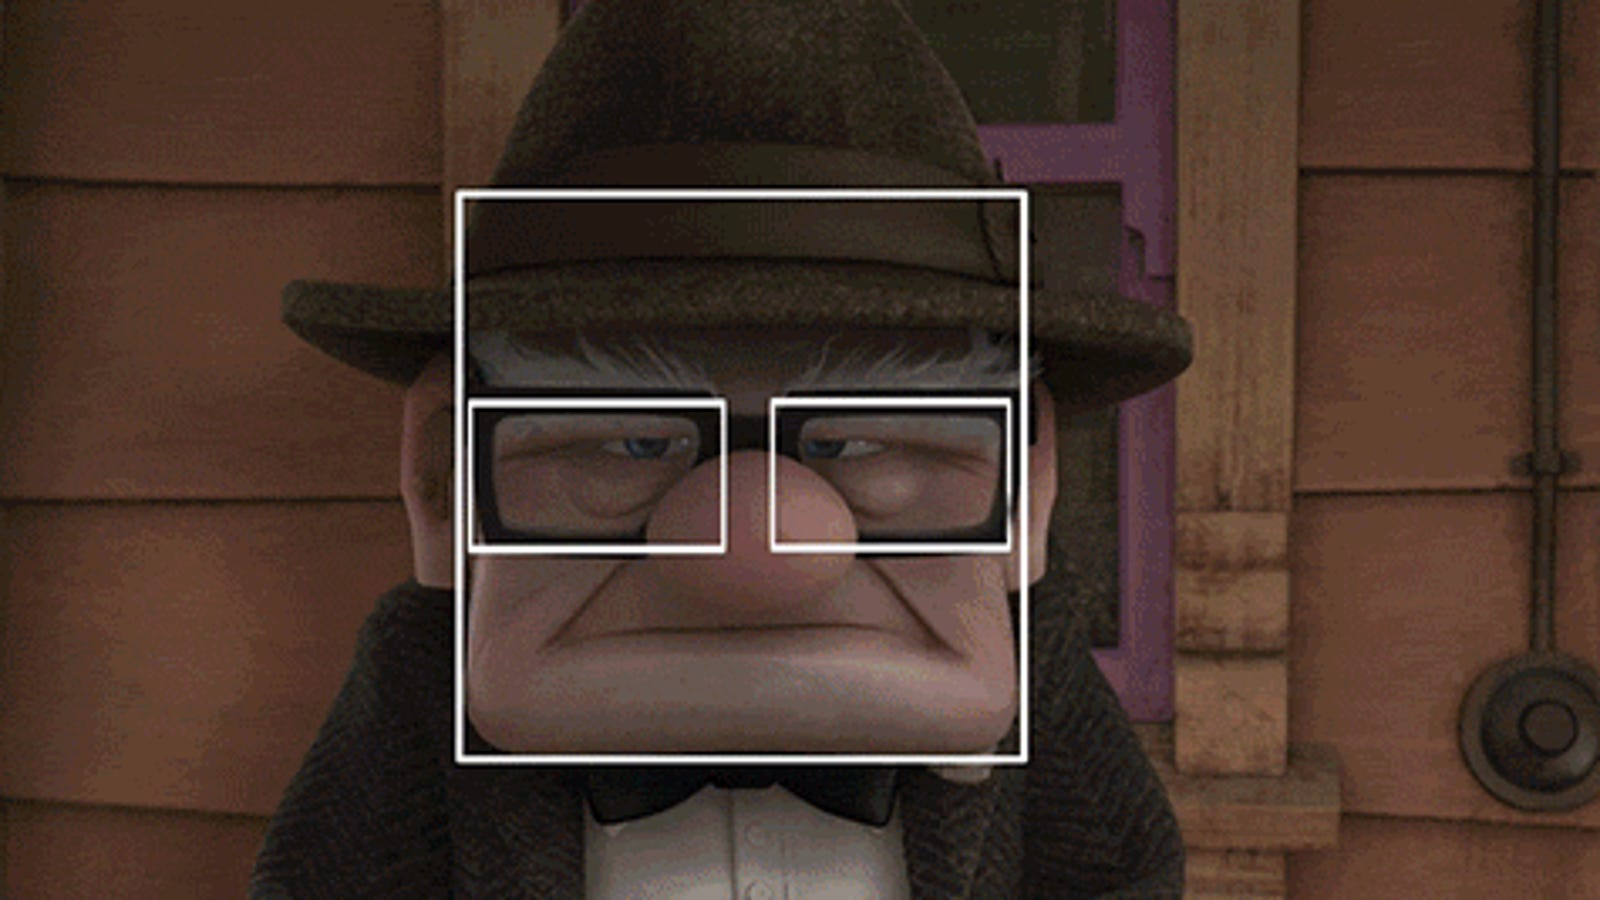 How the Geometry of Movies Can Change the Way We Think